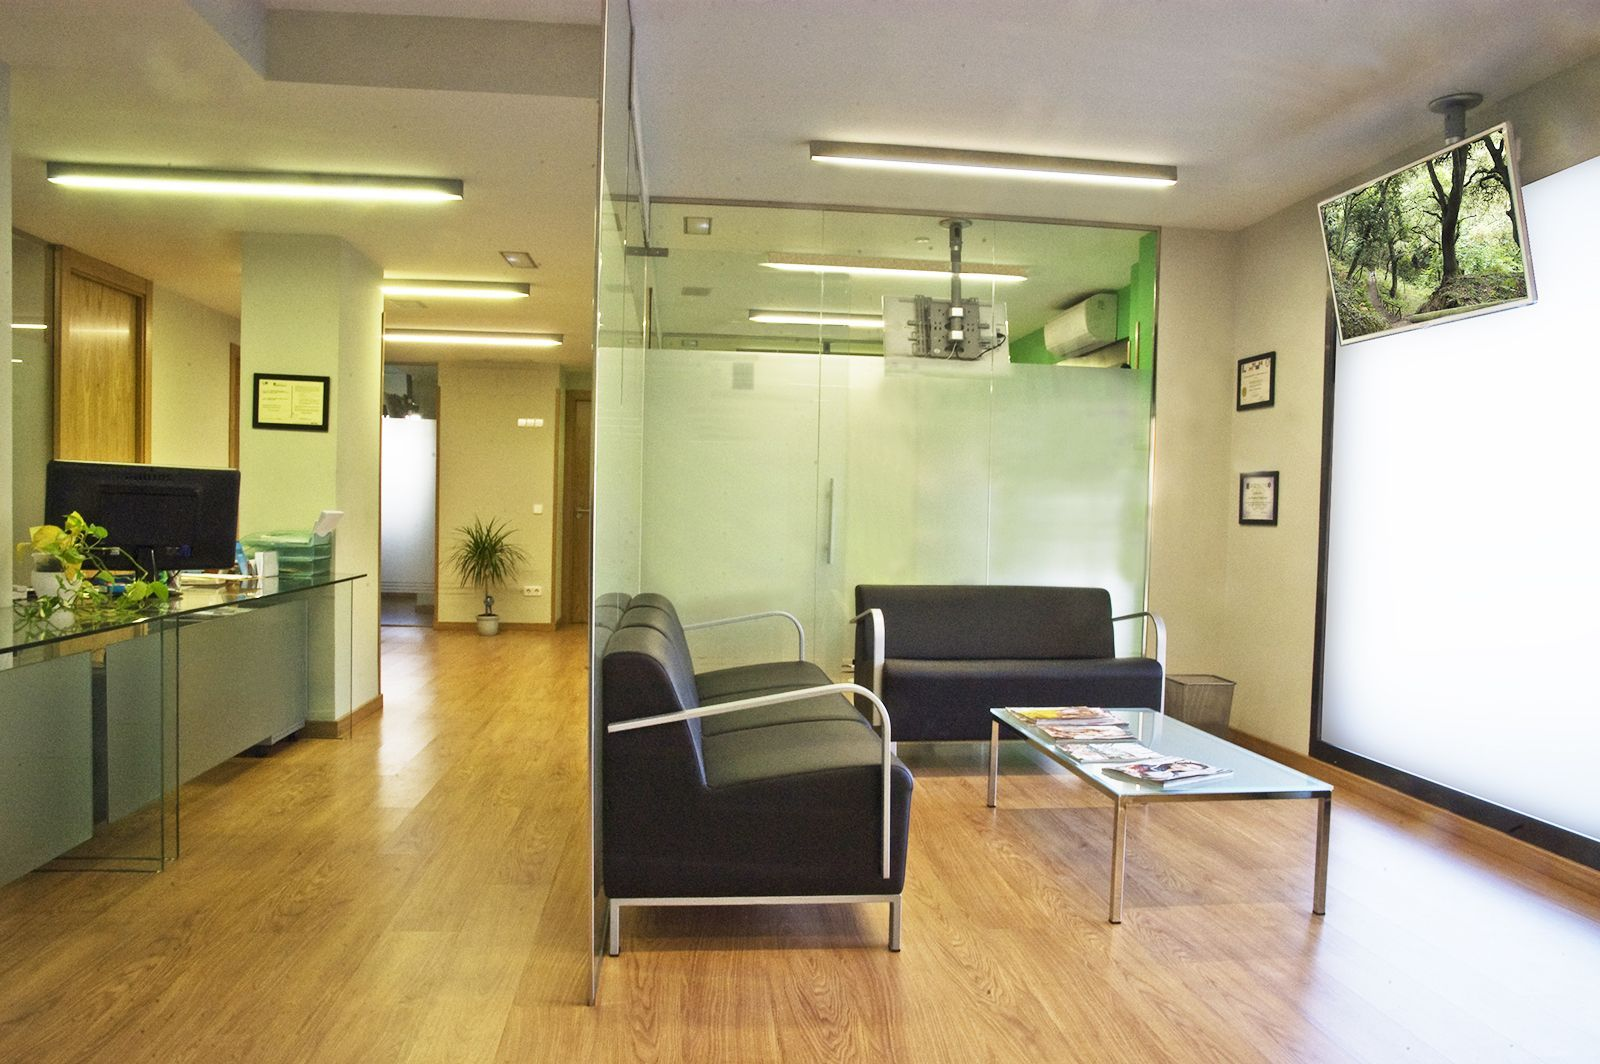 Iridium Clinics Madrid, la clínica dental del Barrio del Pilar